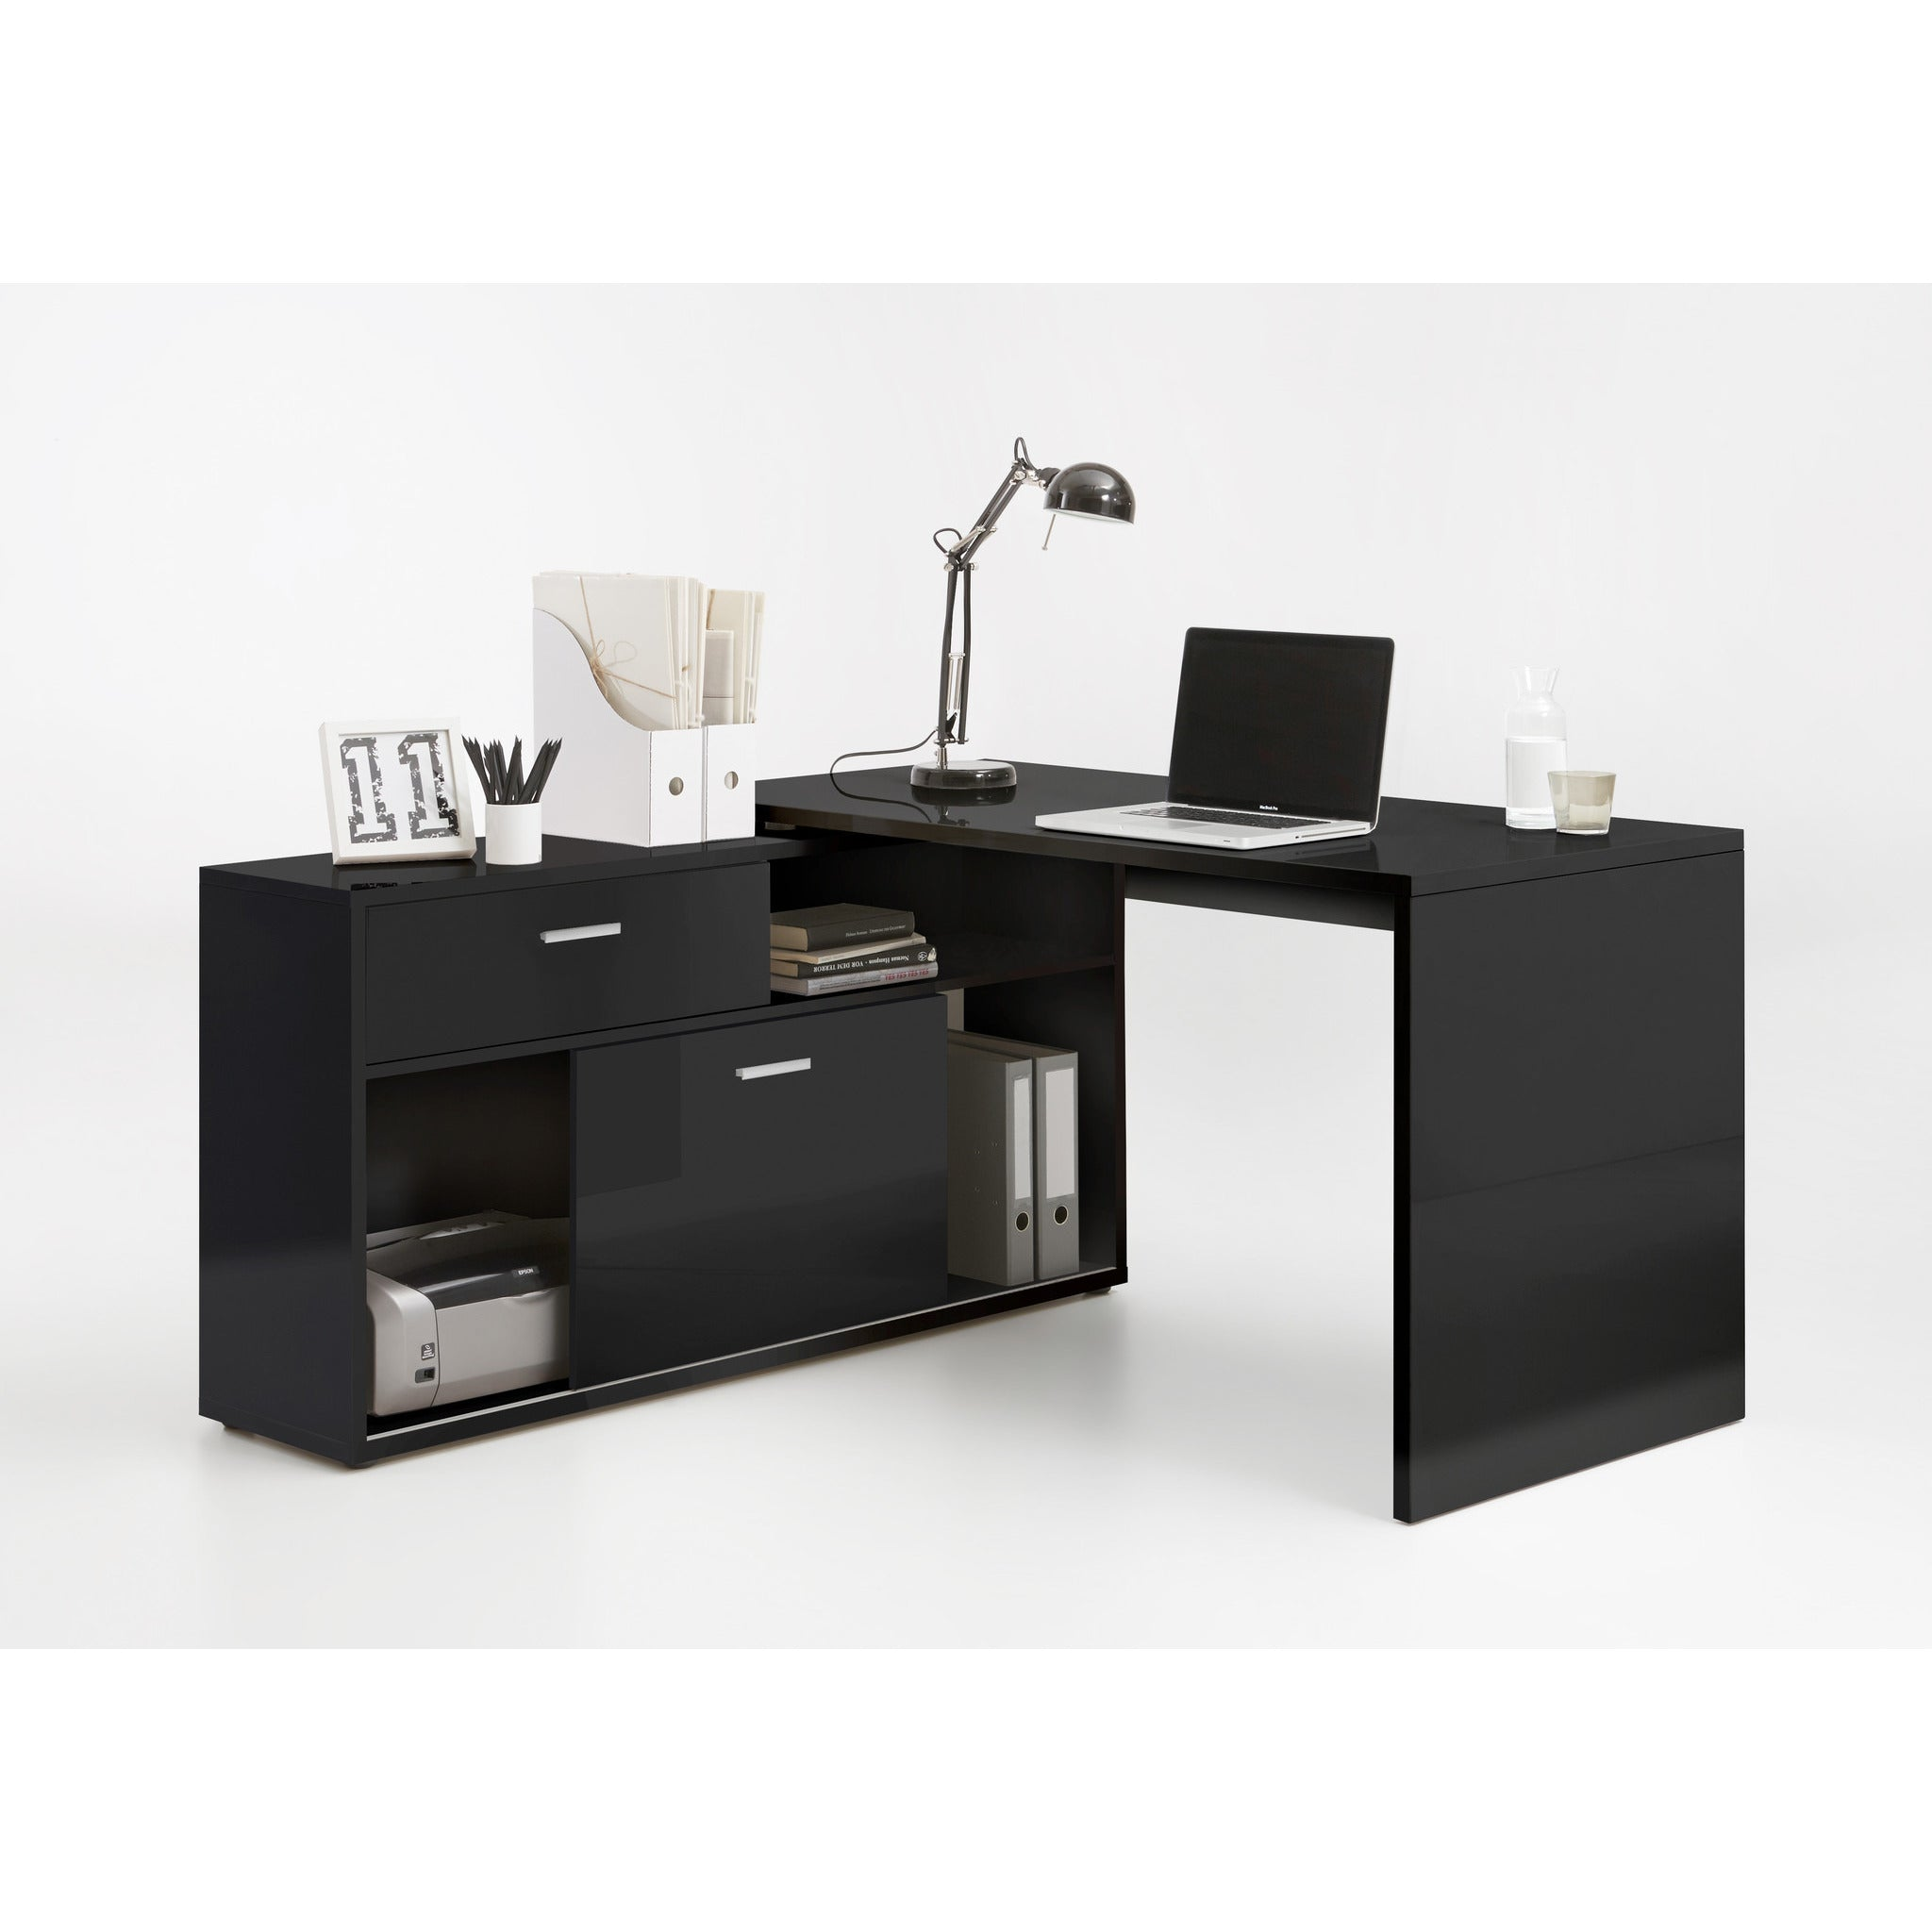 oak from c alphason home delivery office veneer furniture next butler computer for day img the in htm worldstores everything desk desks